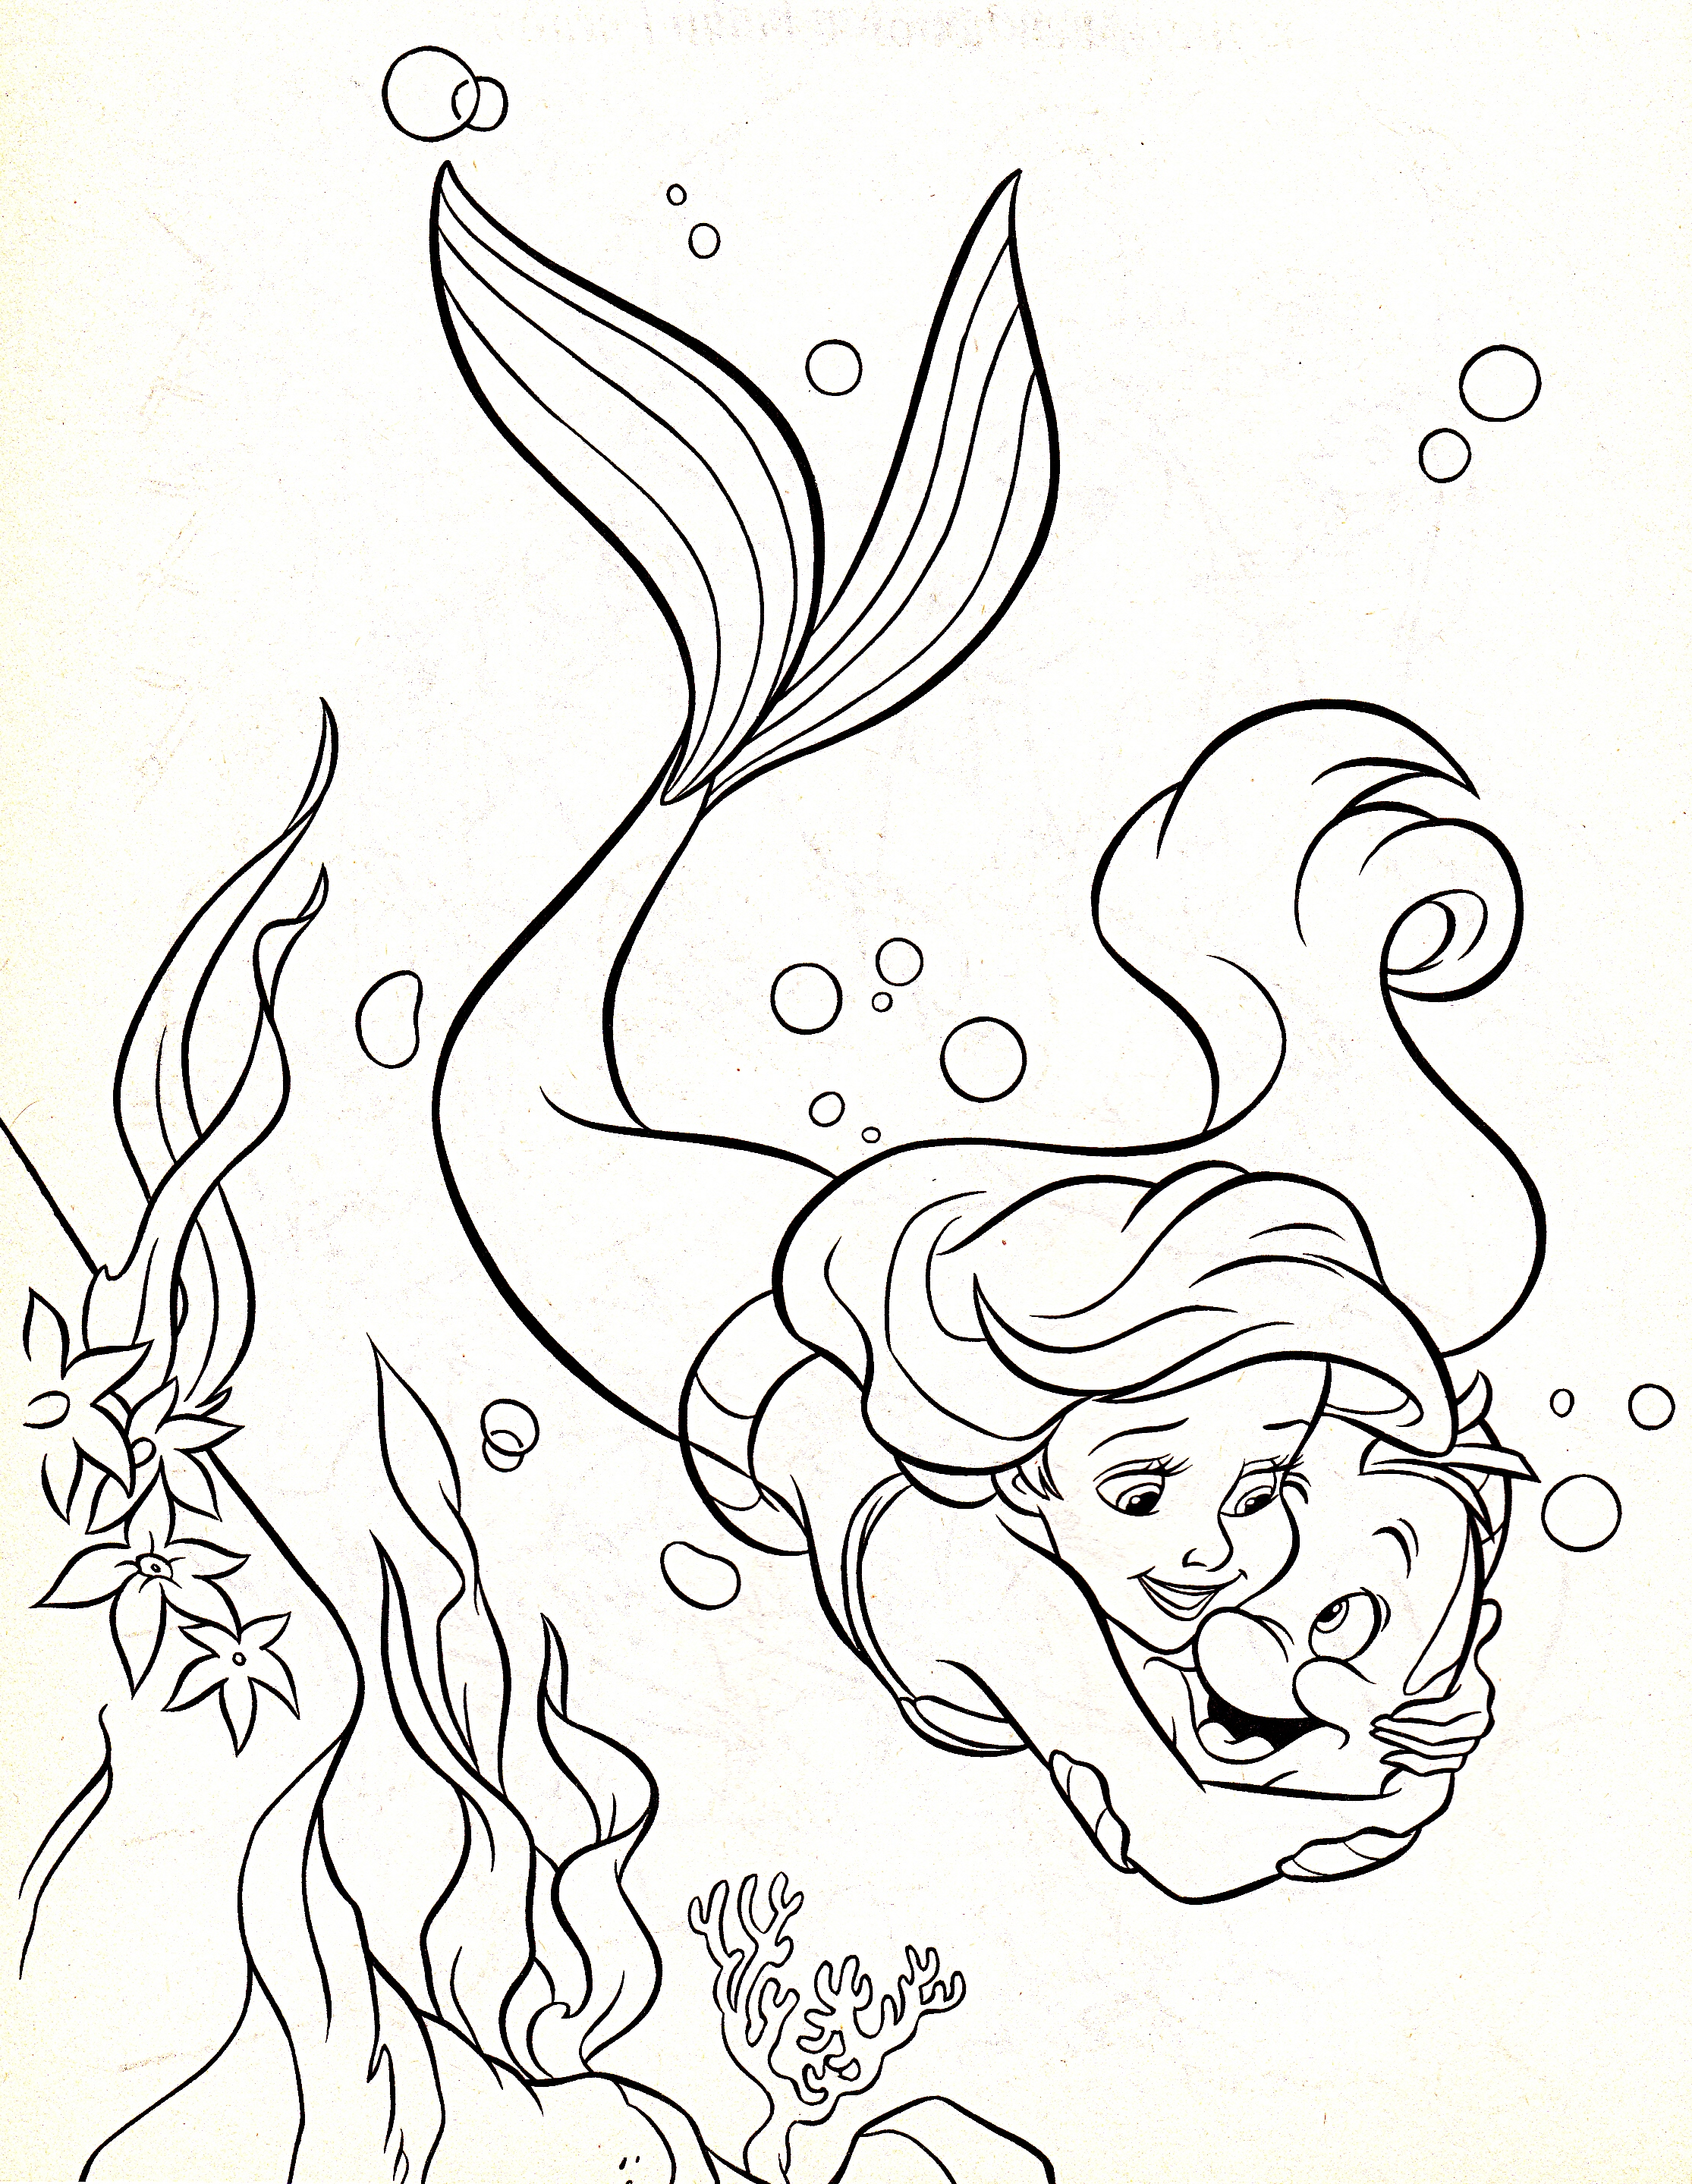 ariel coloring pages characters - photo#20